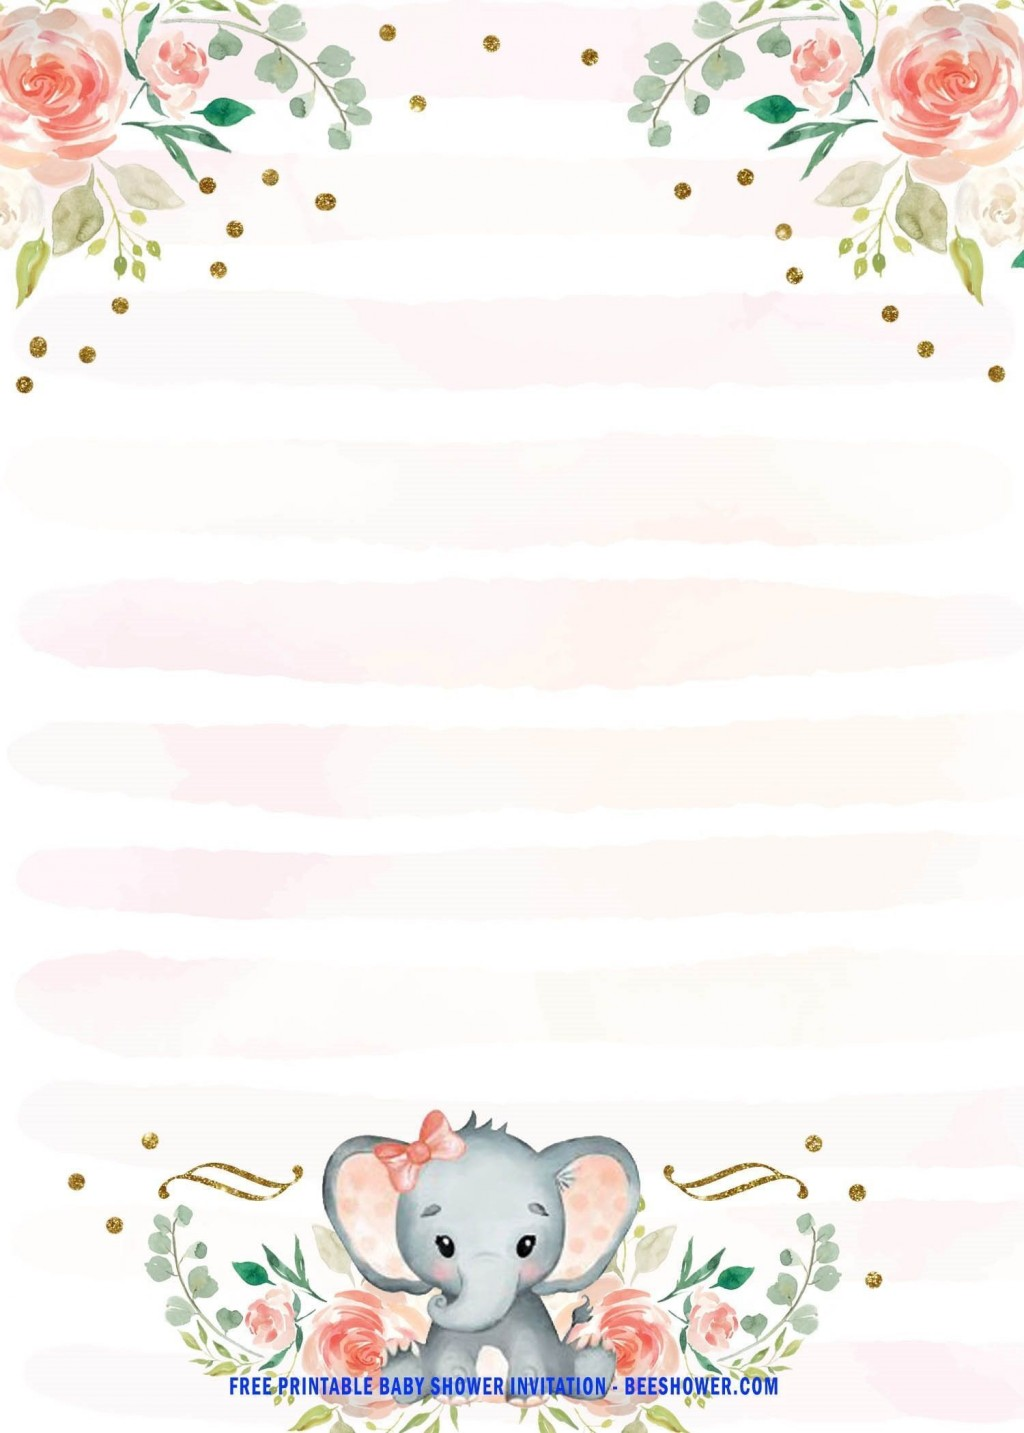 002 Staggering Free Printable Elephant Baby Shower Invitation Template High Definition  Templates EditableLarge